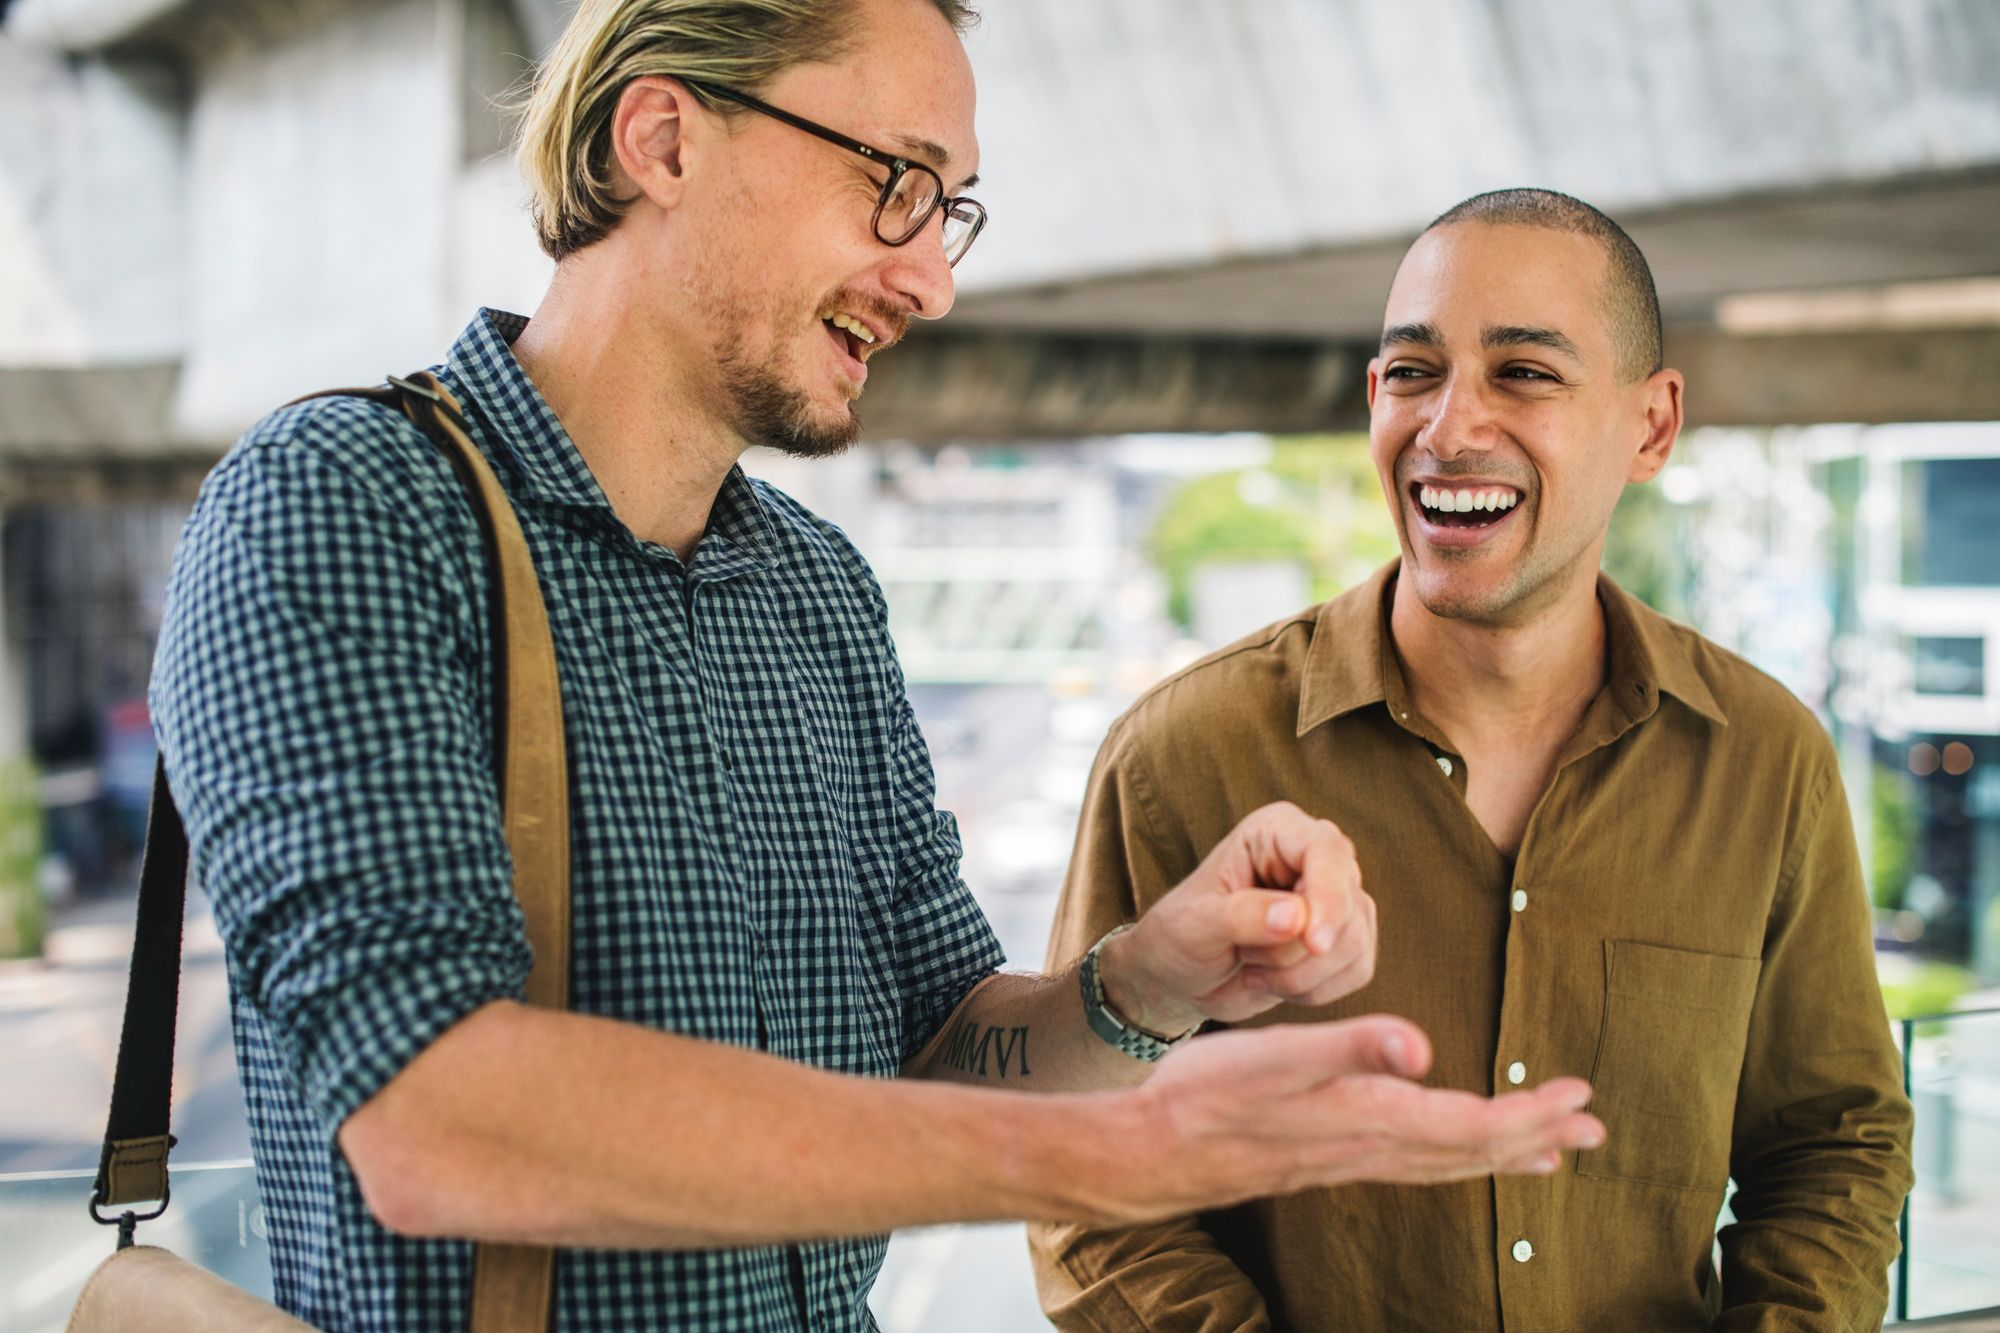 7 Tips for Networking Like a Pro